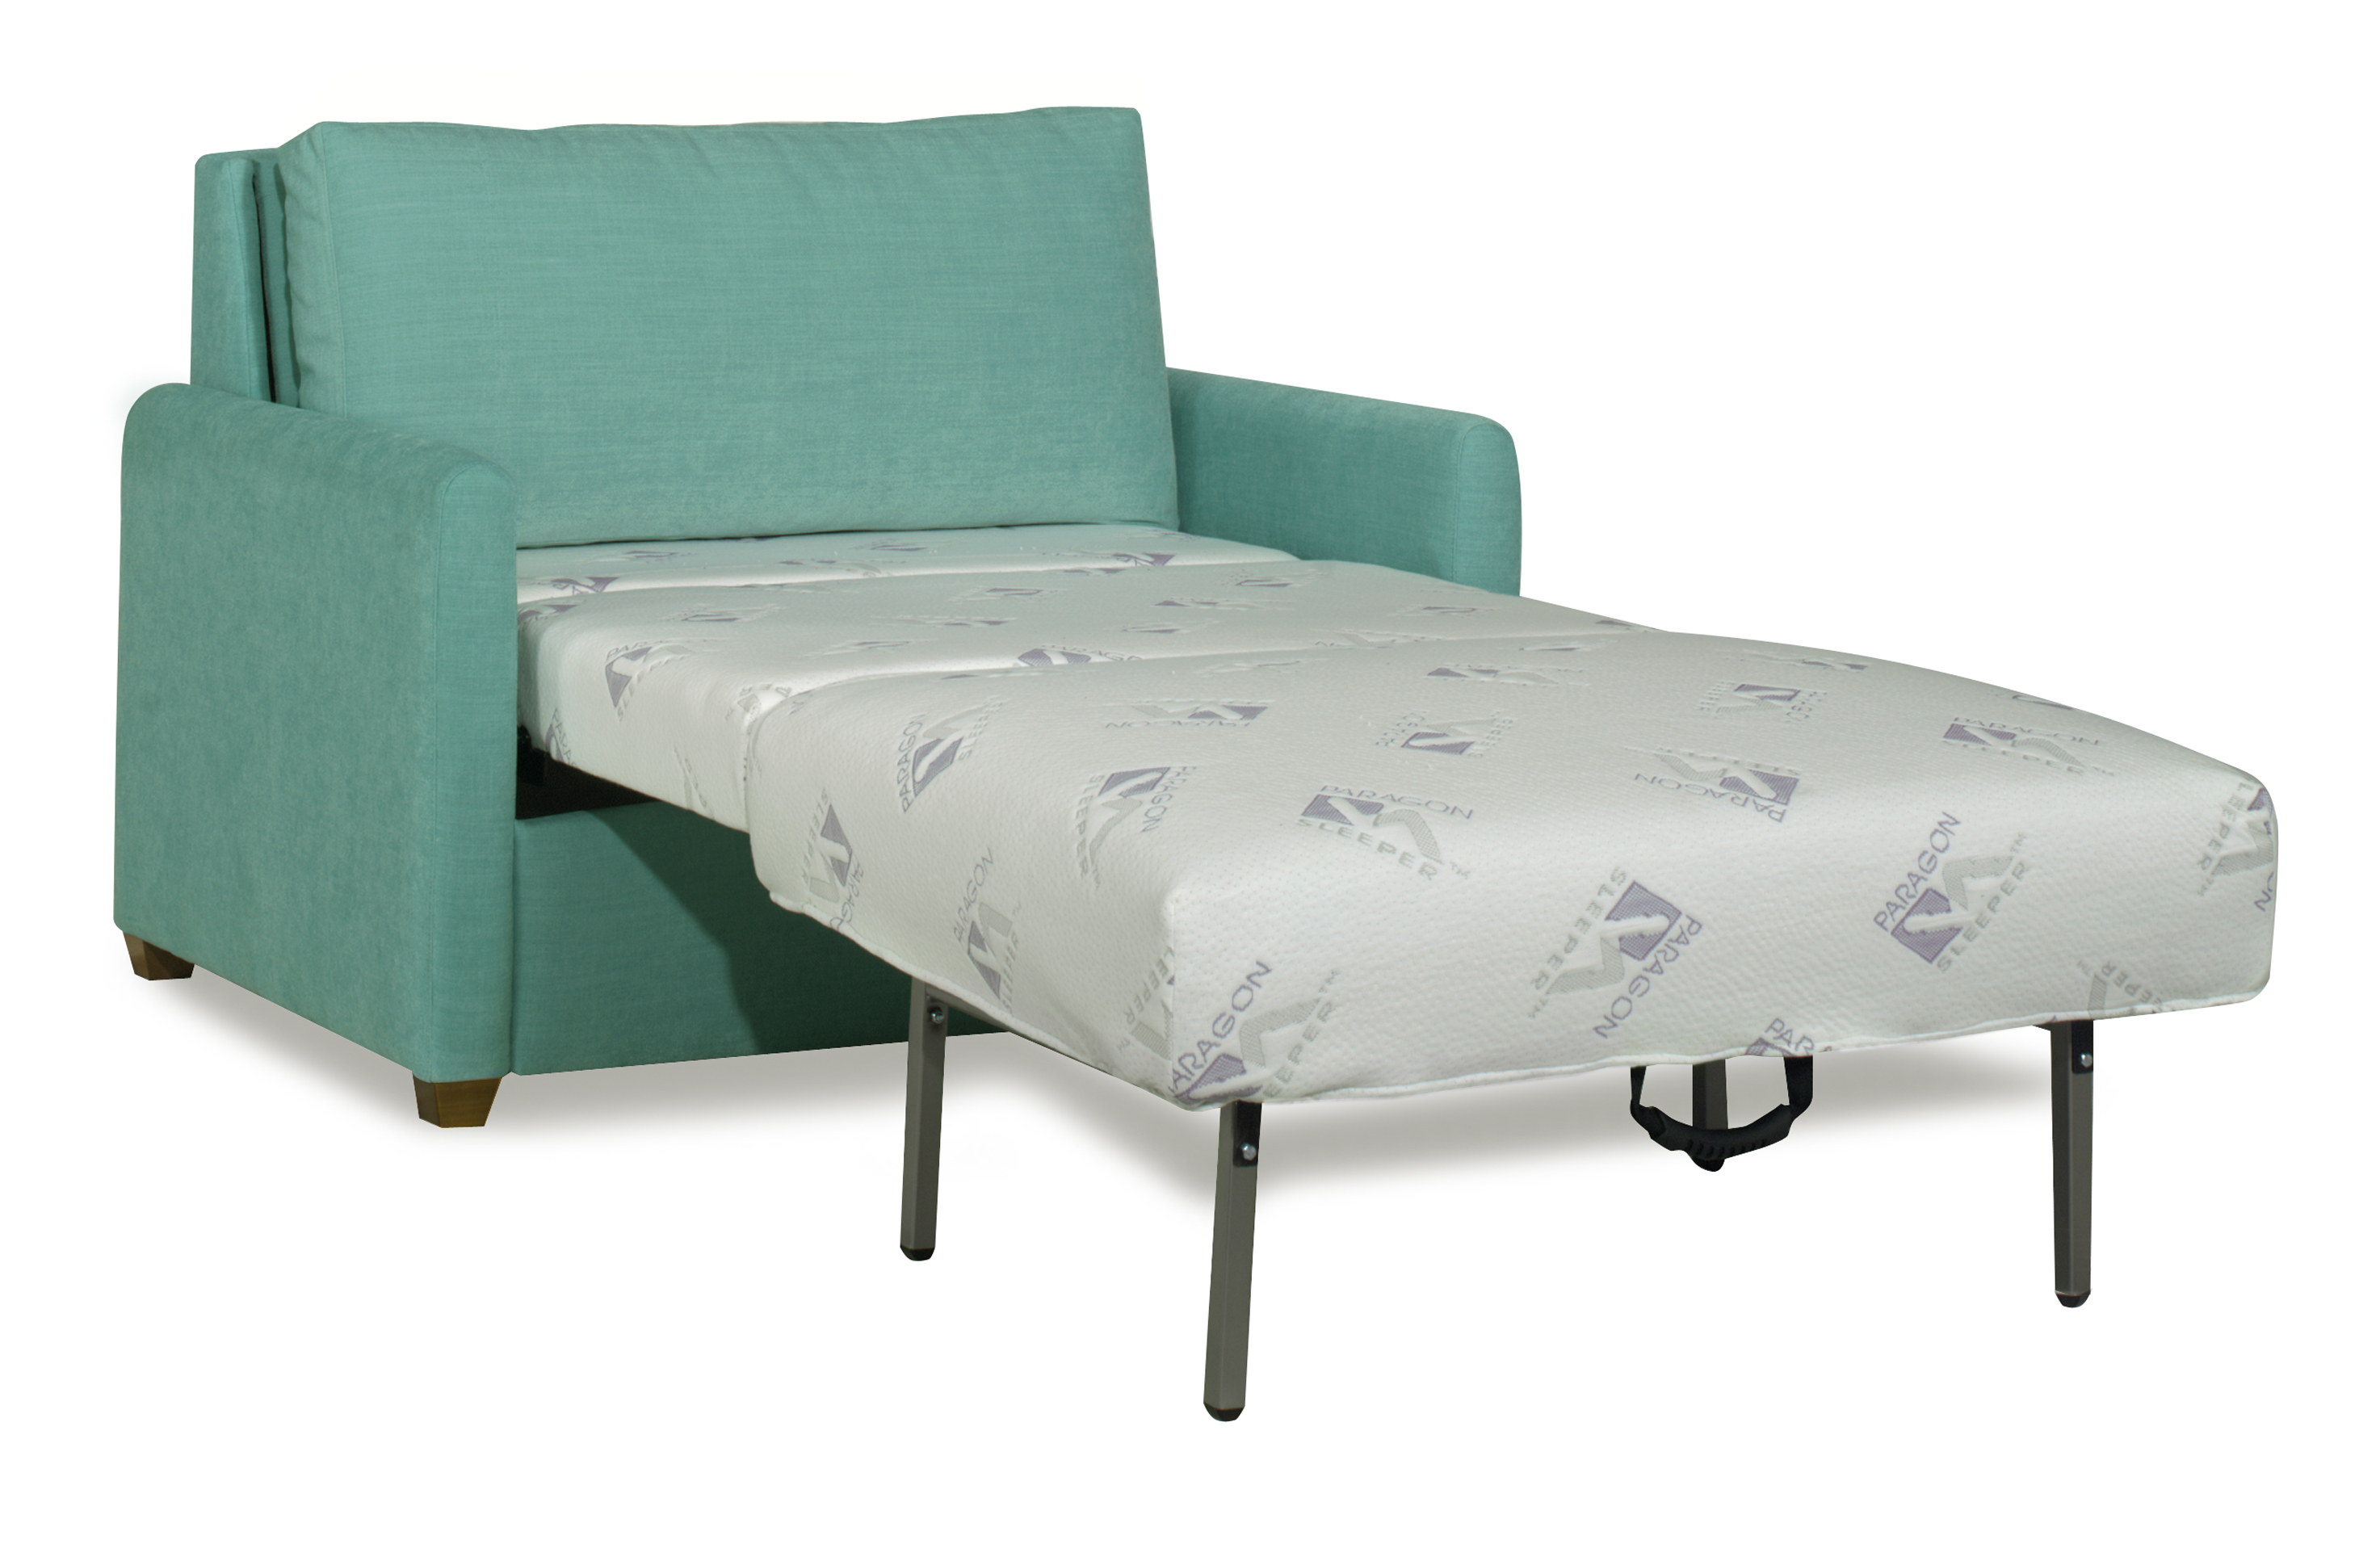 Twin Bed Chair Sleeper Design